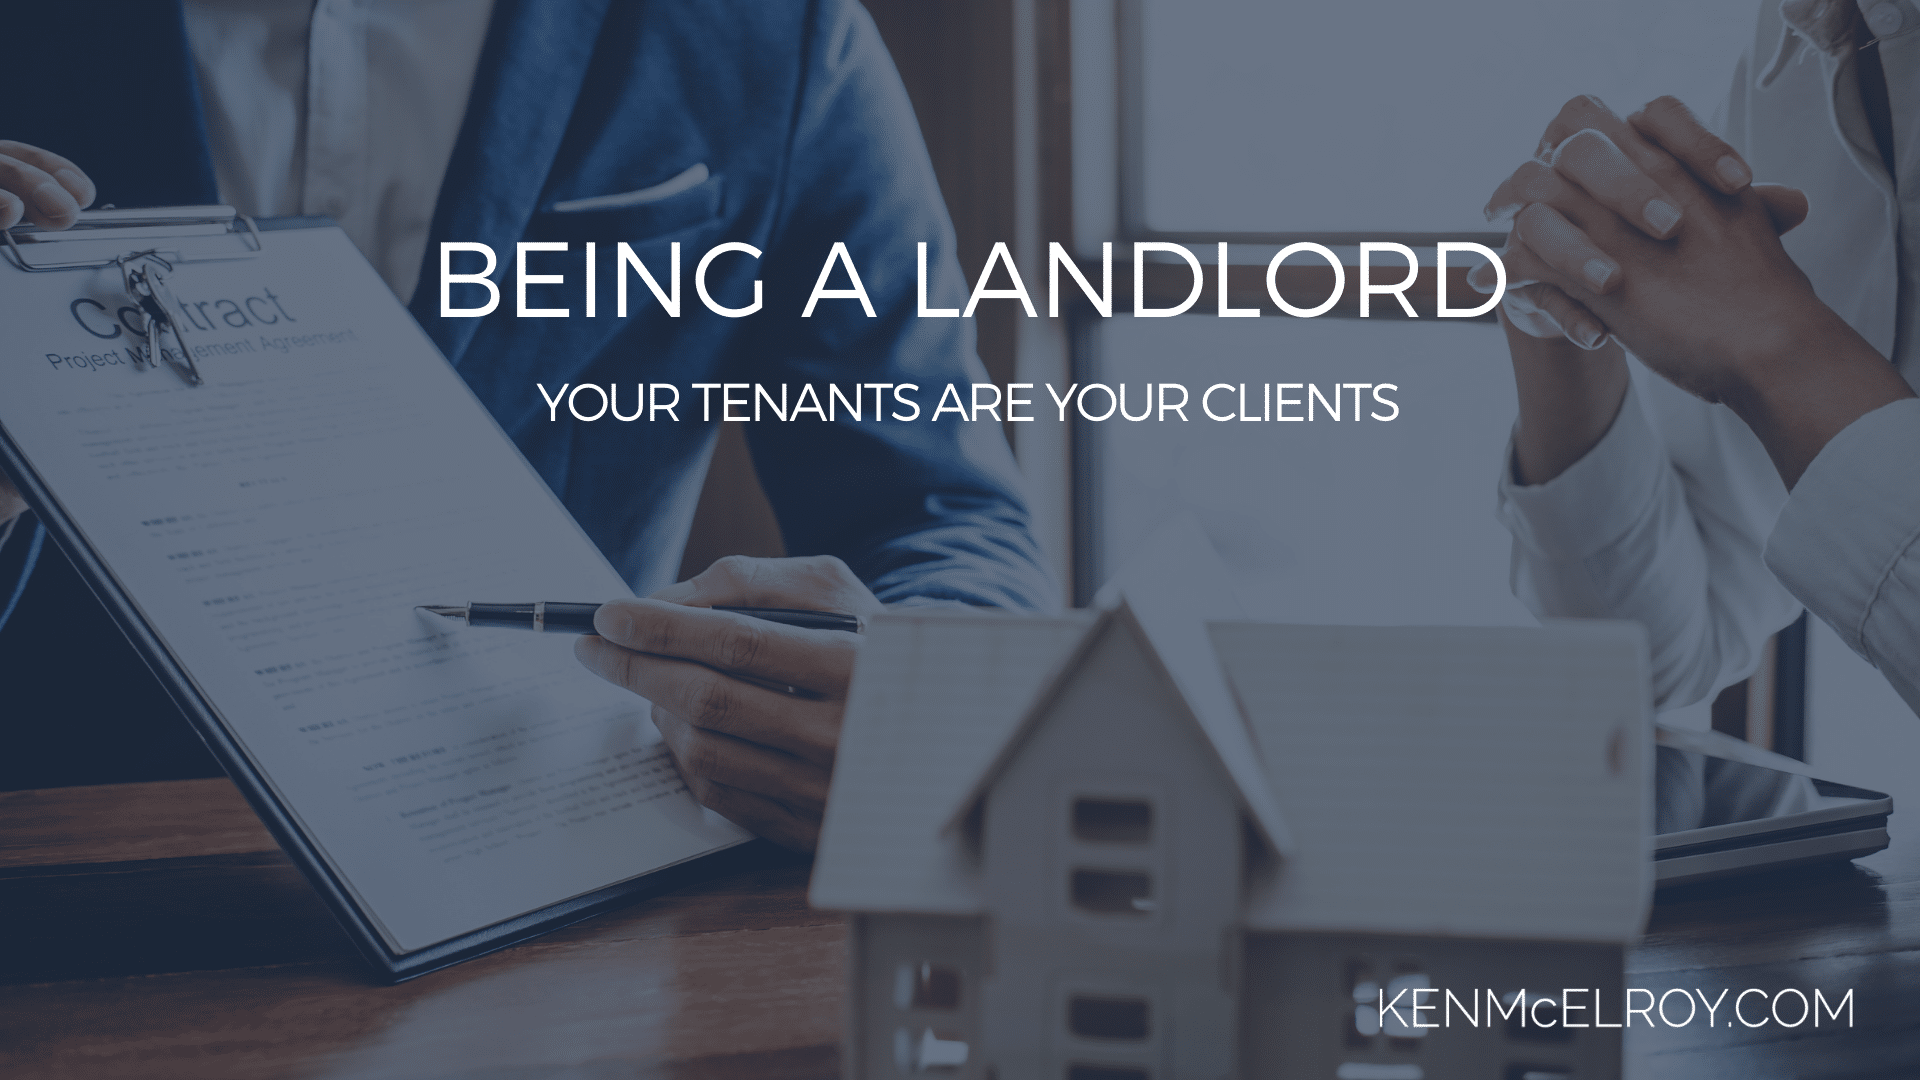 Your tenants are your clients | Ken McElroy Image